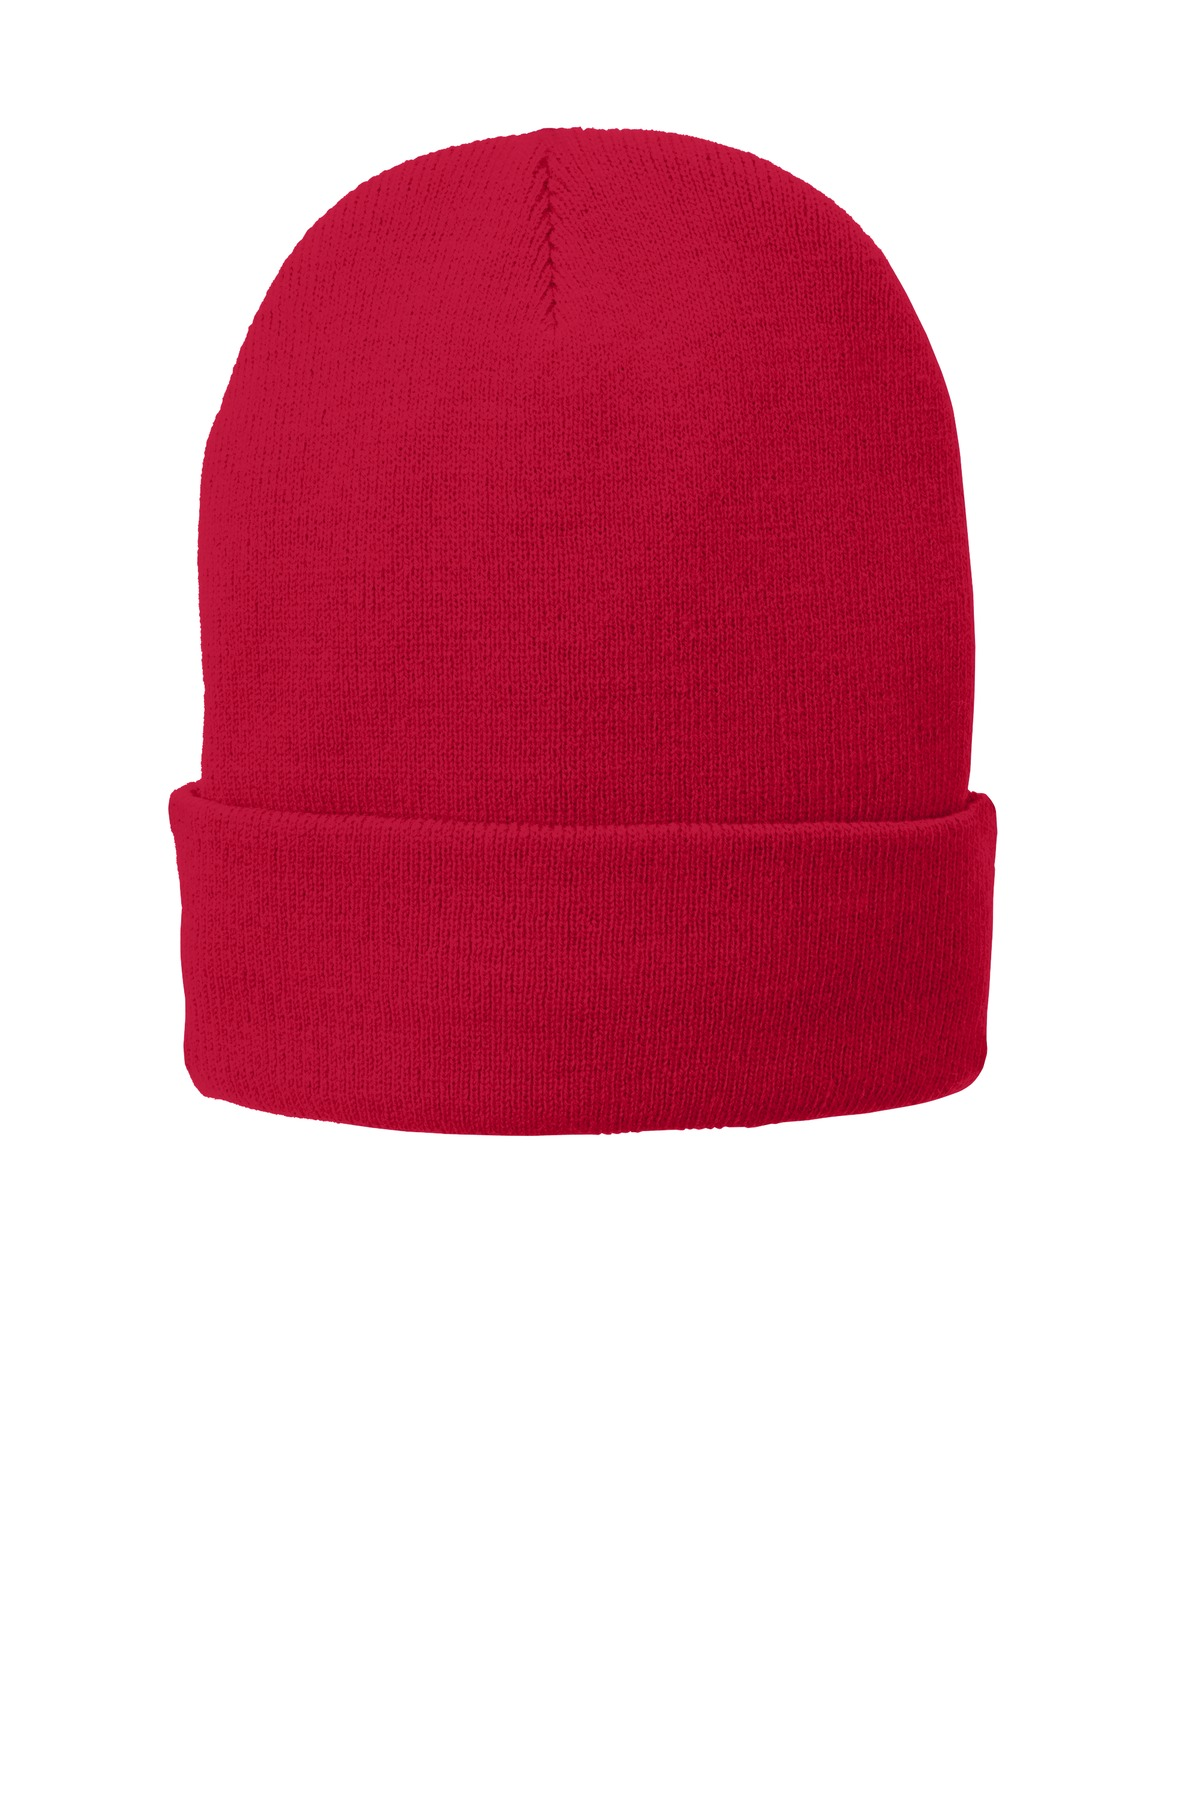 Port & Company ®  Fleece-Lined Knit Cap. CP90L - Athletic Red